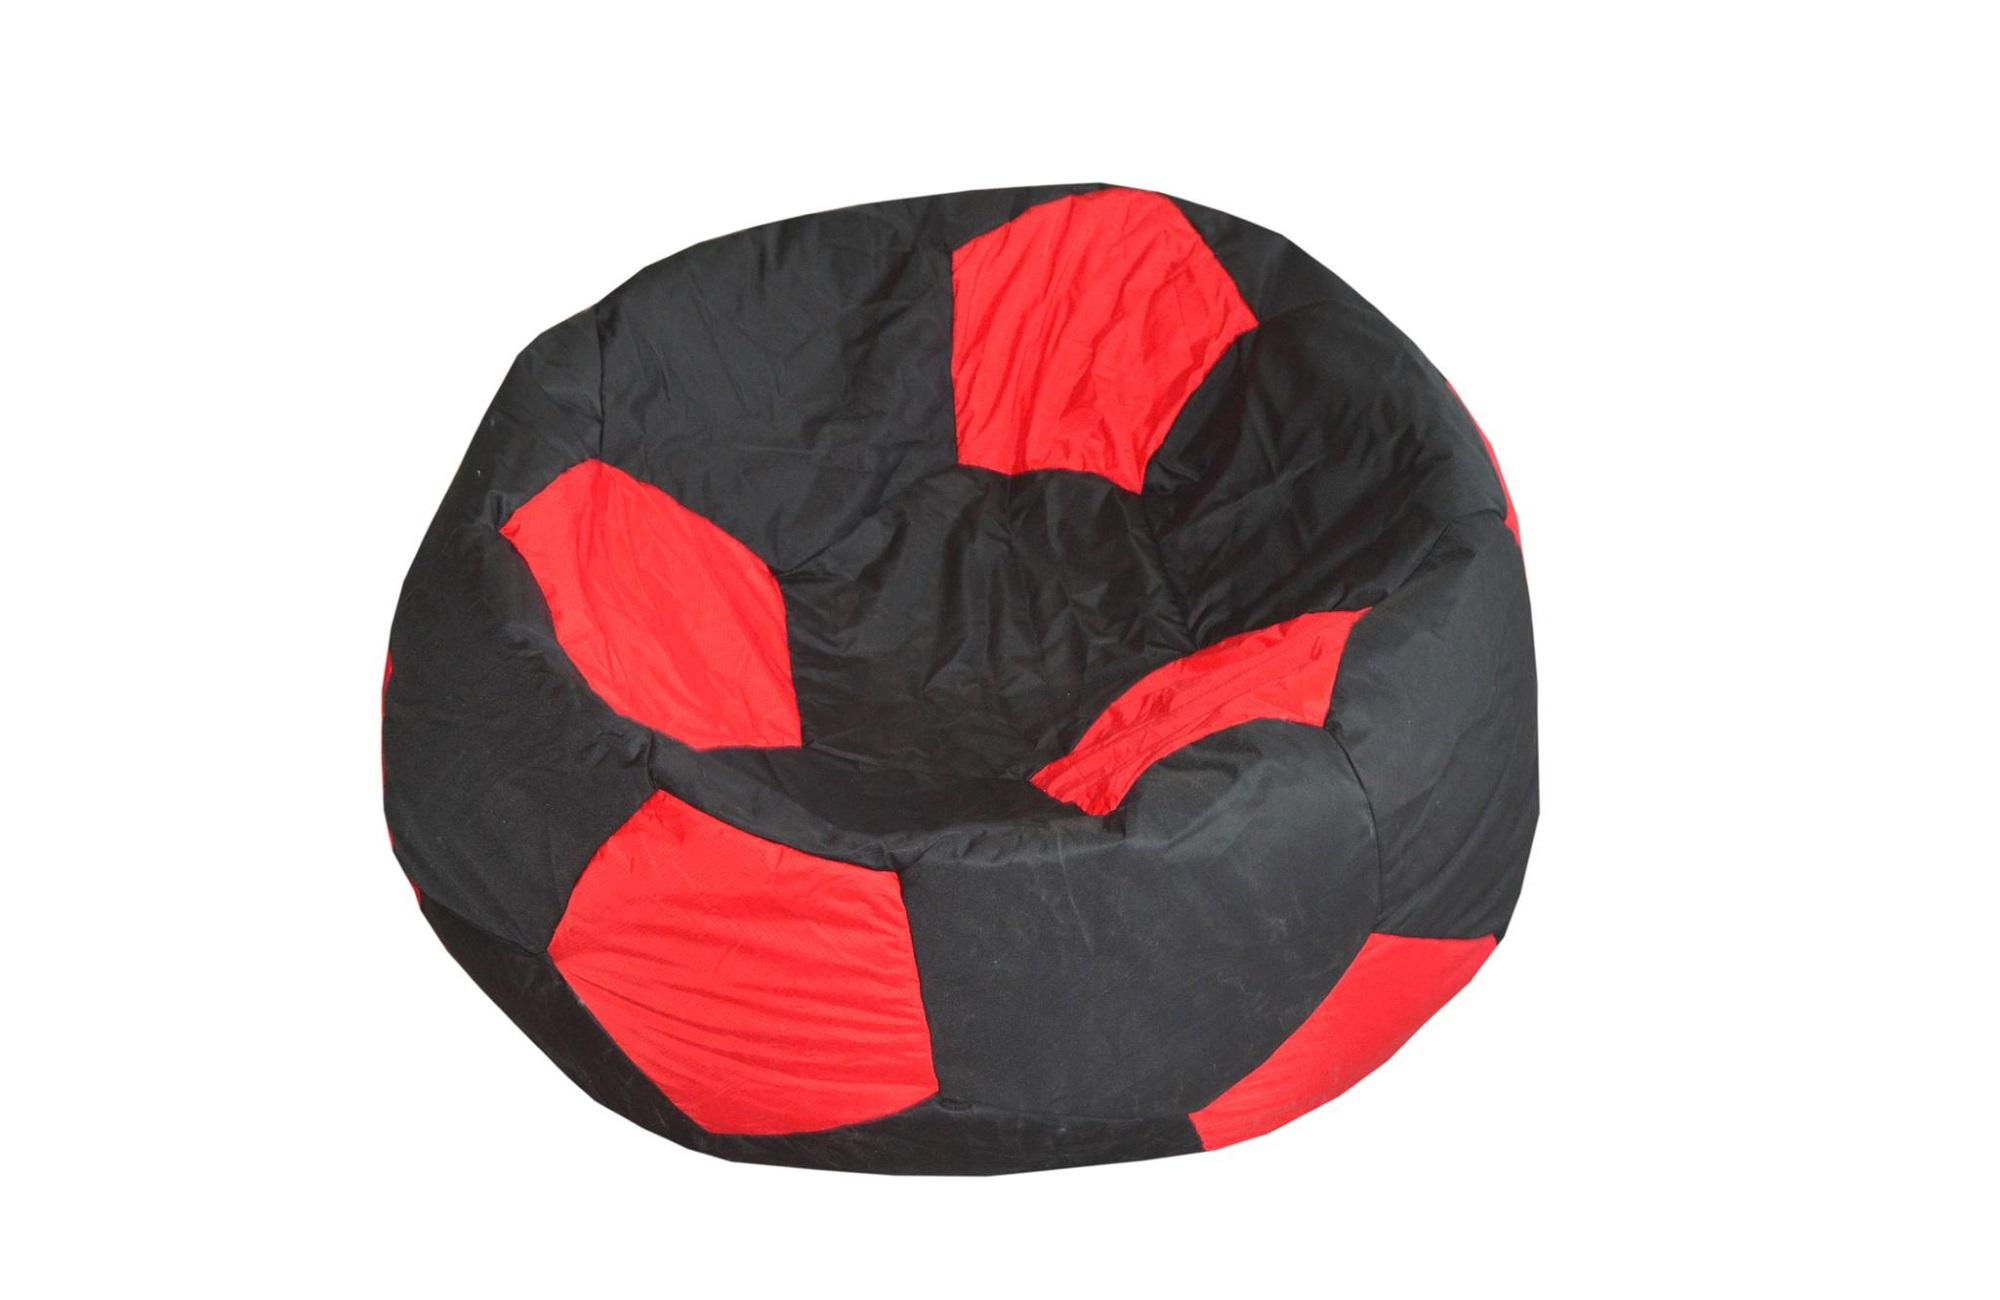 Mini Bean Bag Chair Home Beanbag Buy Home Beanbag At Best Price In Pakistan Www